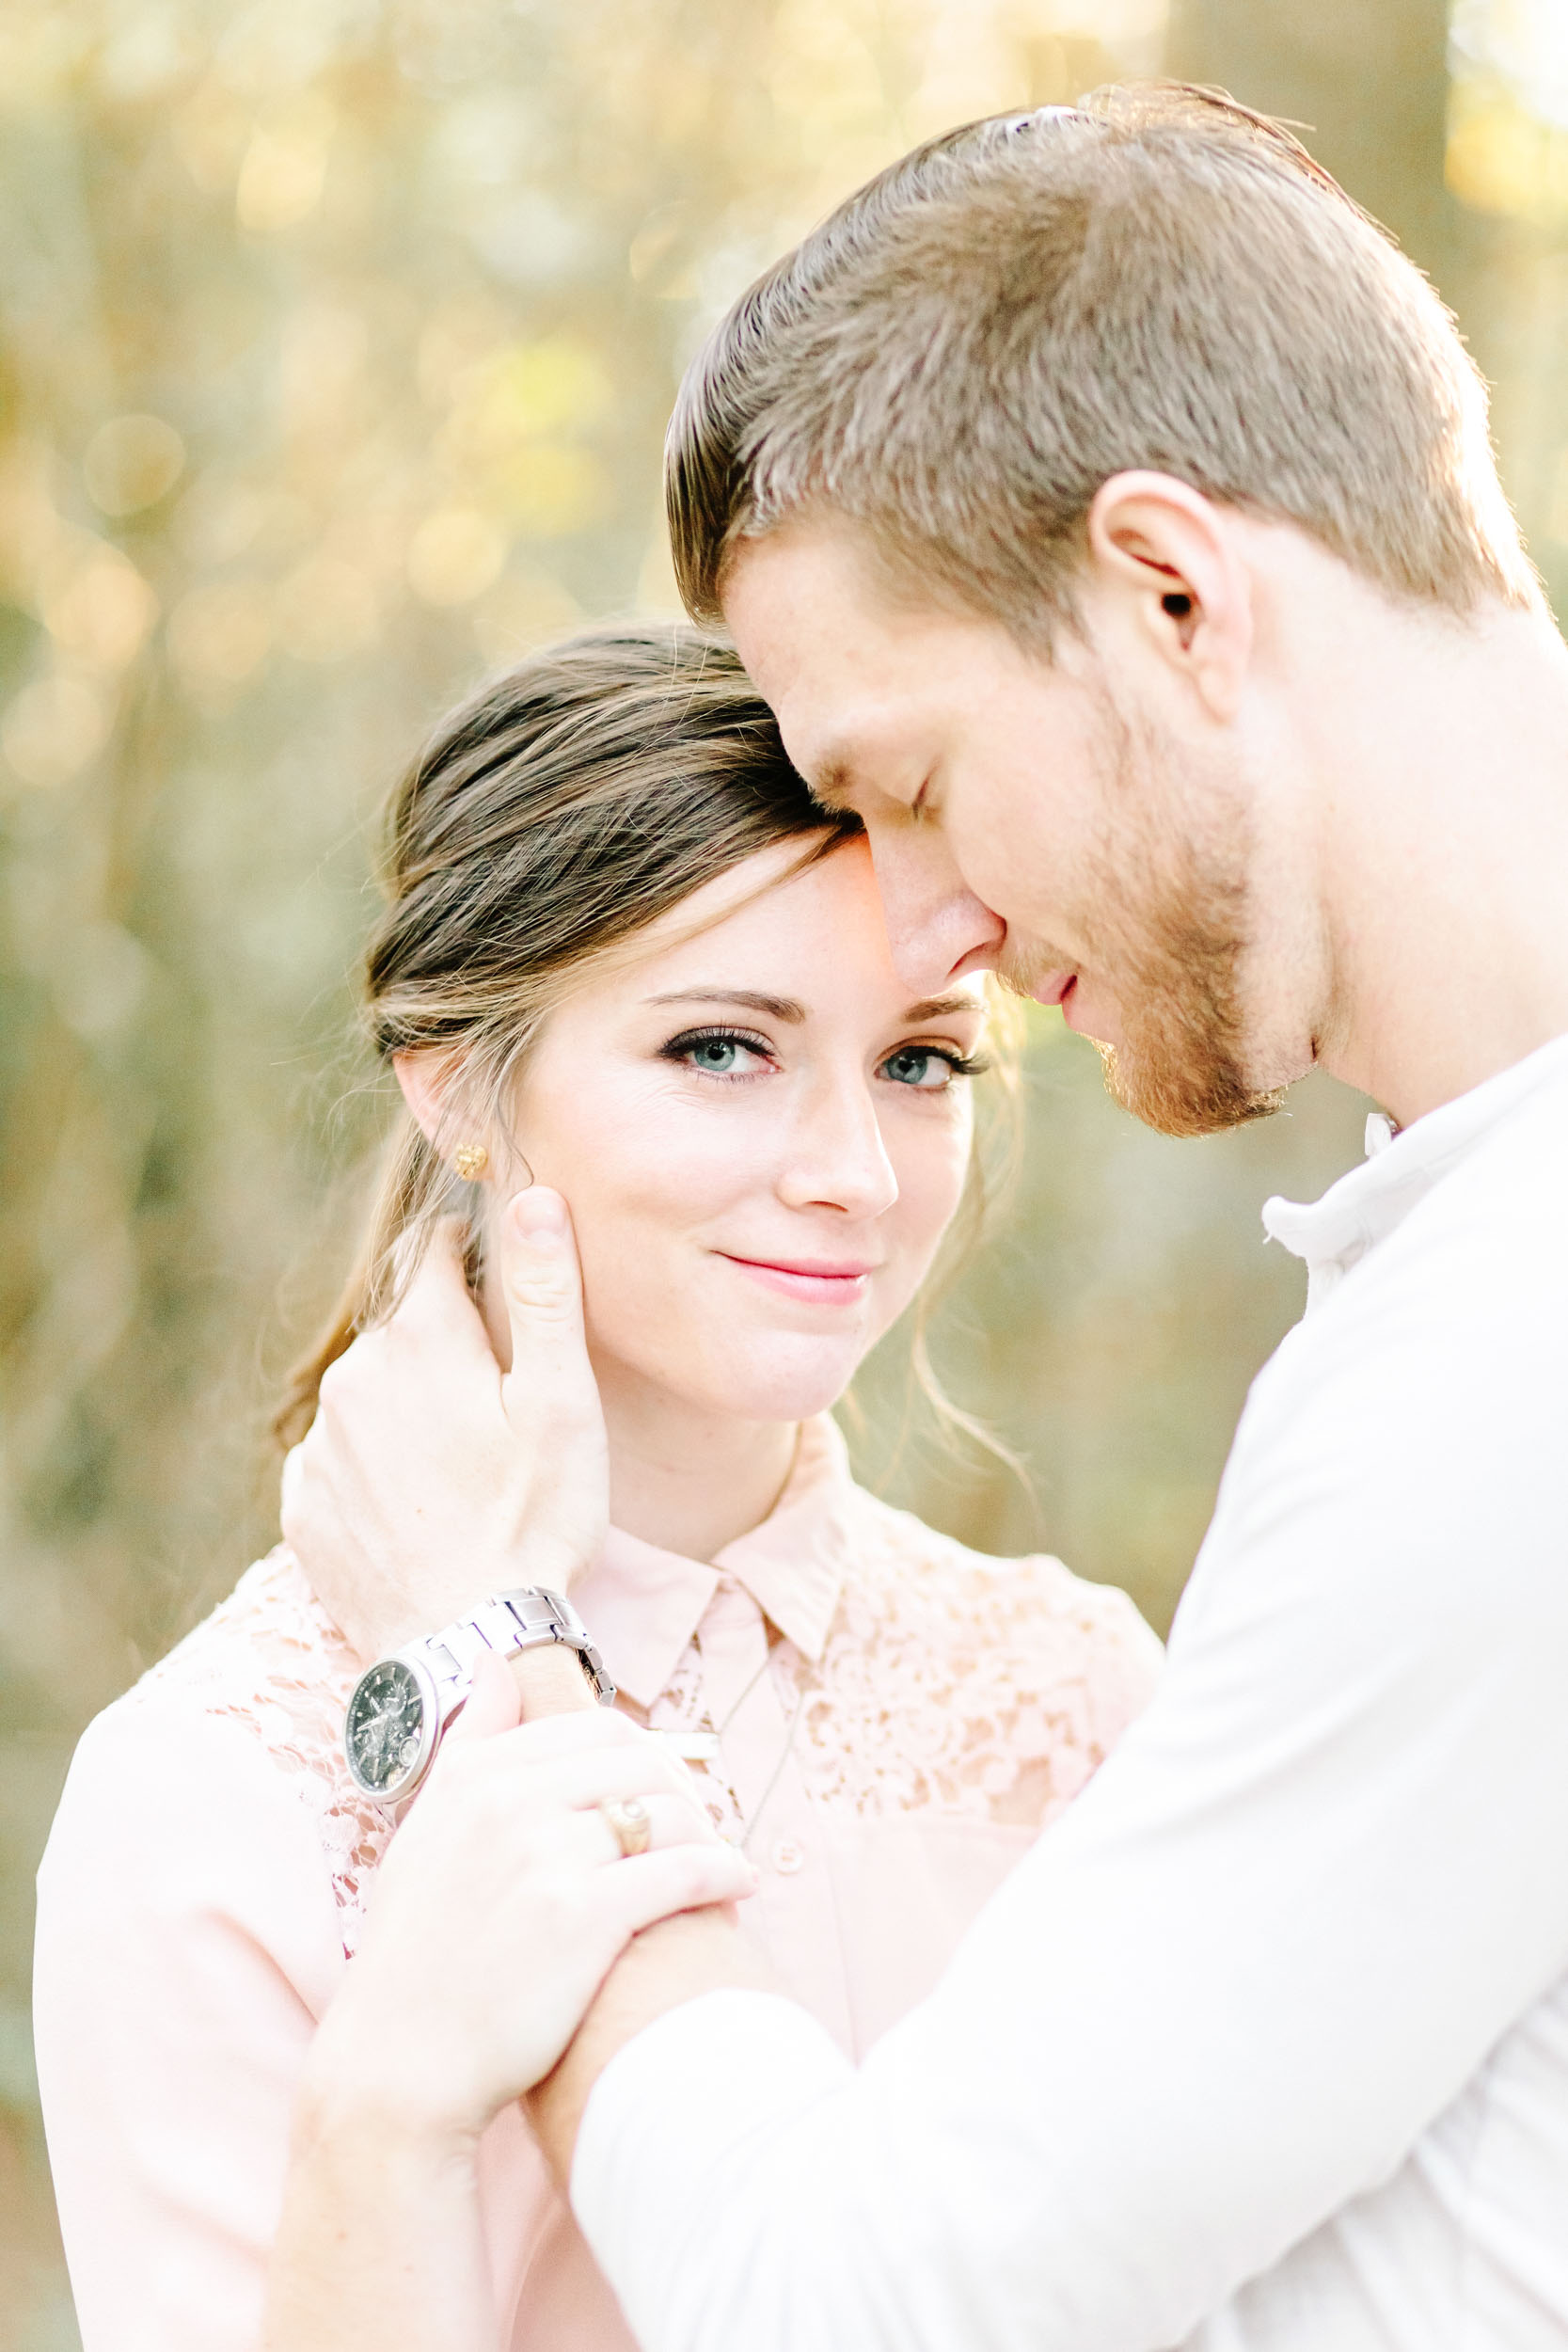 Cassie Schott Photography_Houston and Chicago Portrait Photographer_Engagement Sessions and Anniversary Sessions_2.jpg